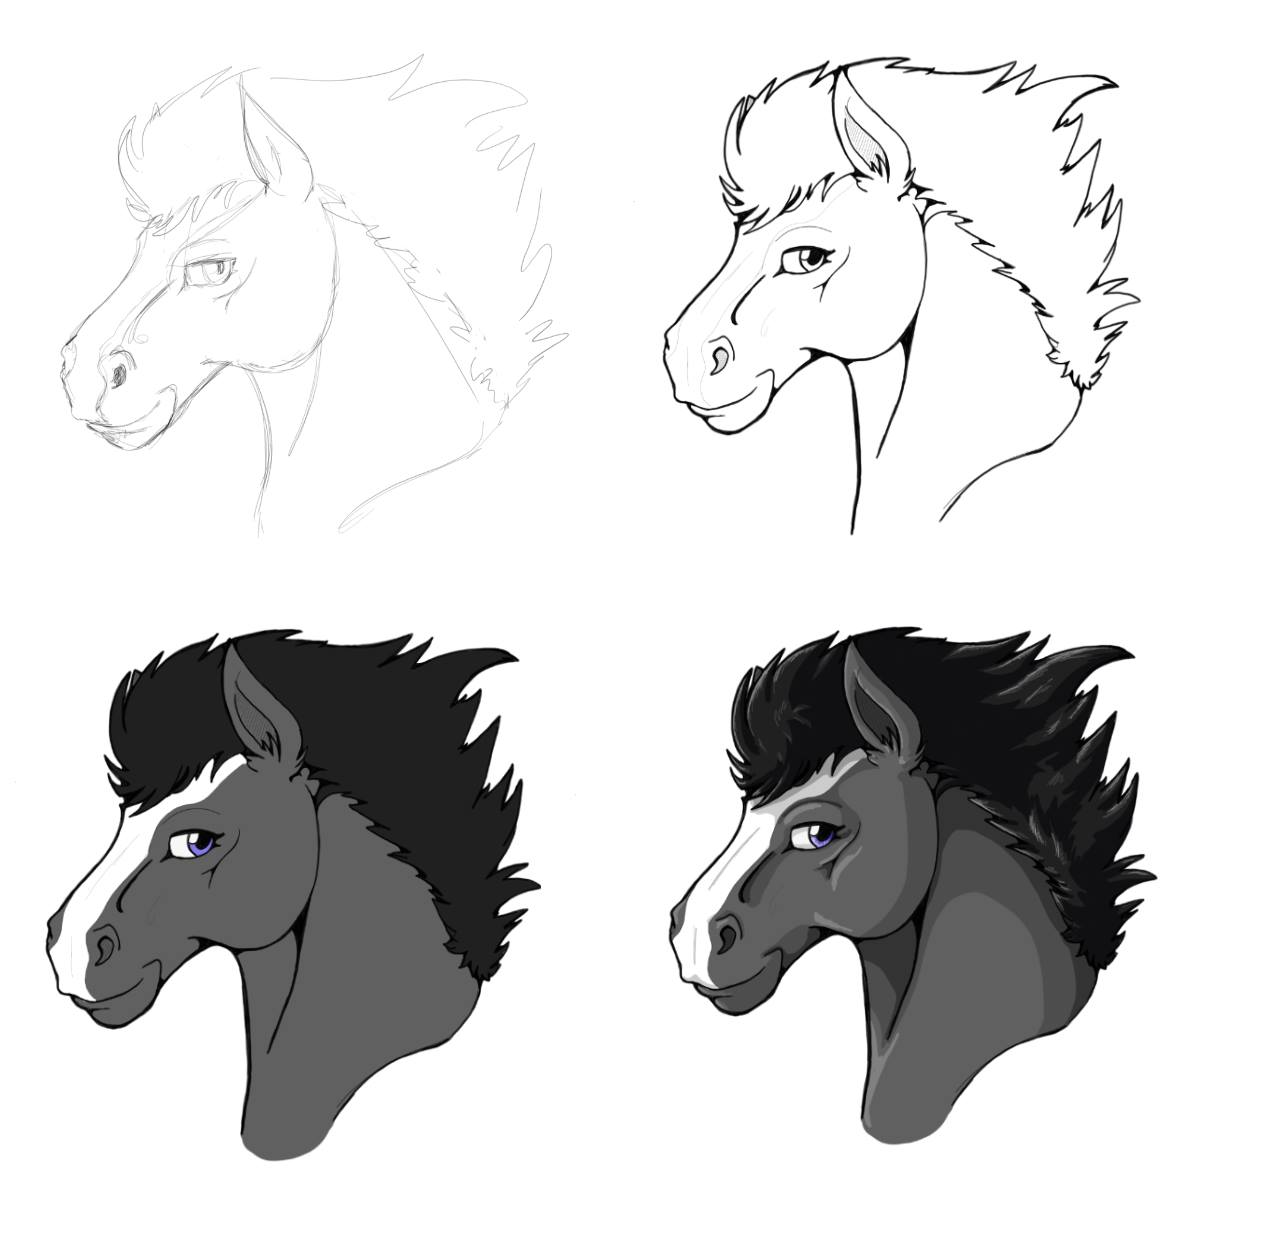 An illustration of a horse's head in four stages of completion: Sketch, linework, flat colour, and with shading.